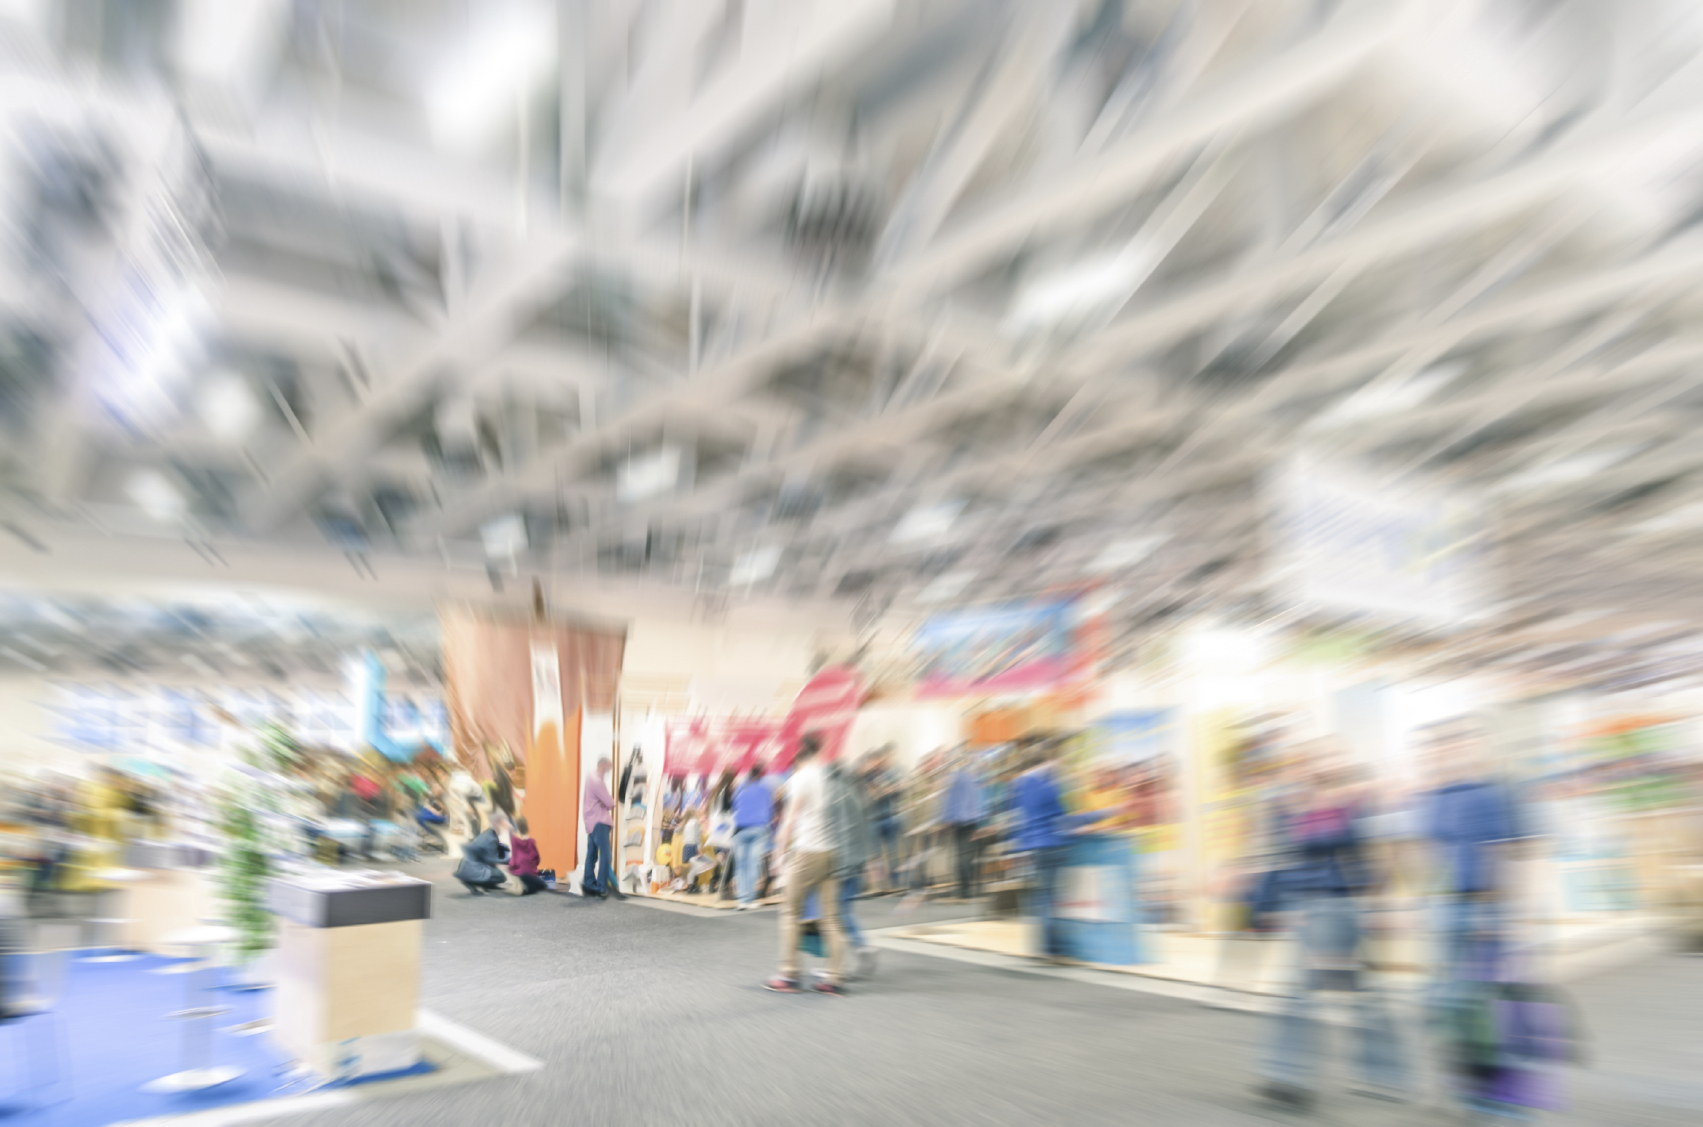 blurred image of trade show